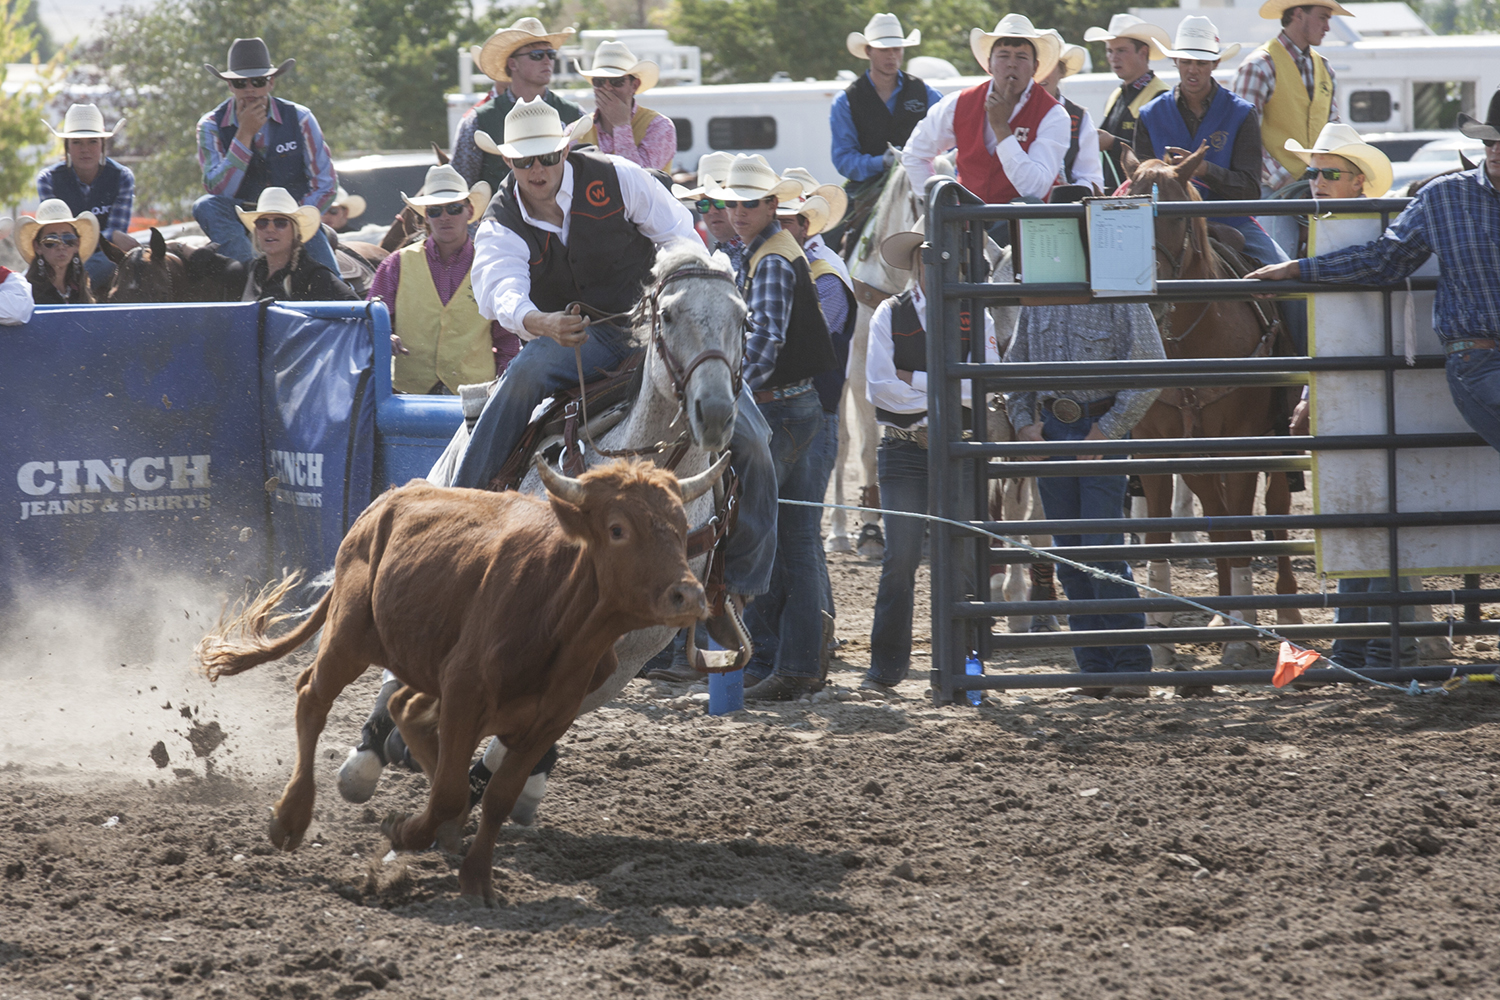 CWC rodeo cowboy Dalton Burgener speeds up his horse to wrestle a steer